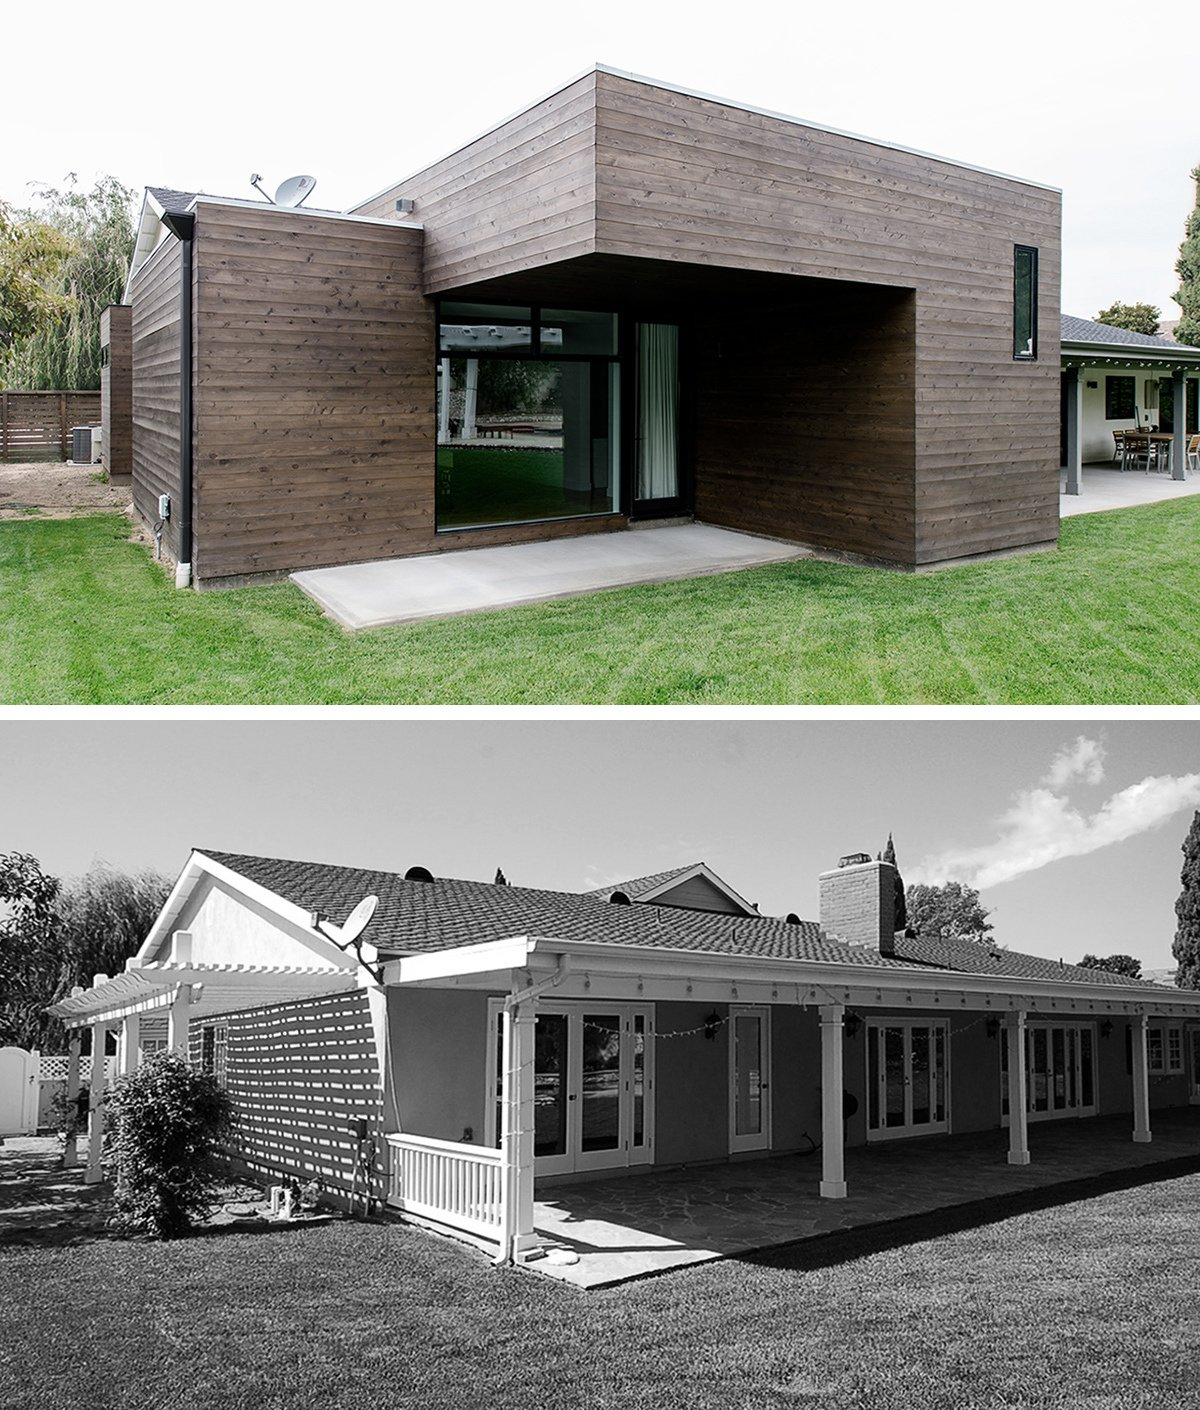 AFTER / BEFORE   [addition at rear, villa park modern] Tagged: Outdoor, Hardscapes, Grass, Large Patio, Porch, Deck, Wood Patio, Porch, Deck, Concrete Patio, Porch, Deck, and Horizontal Fences, Wall.  Villa Park Modern by MYD studio, inc.